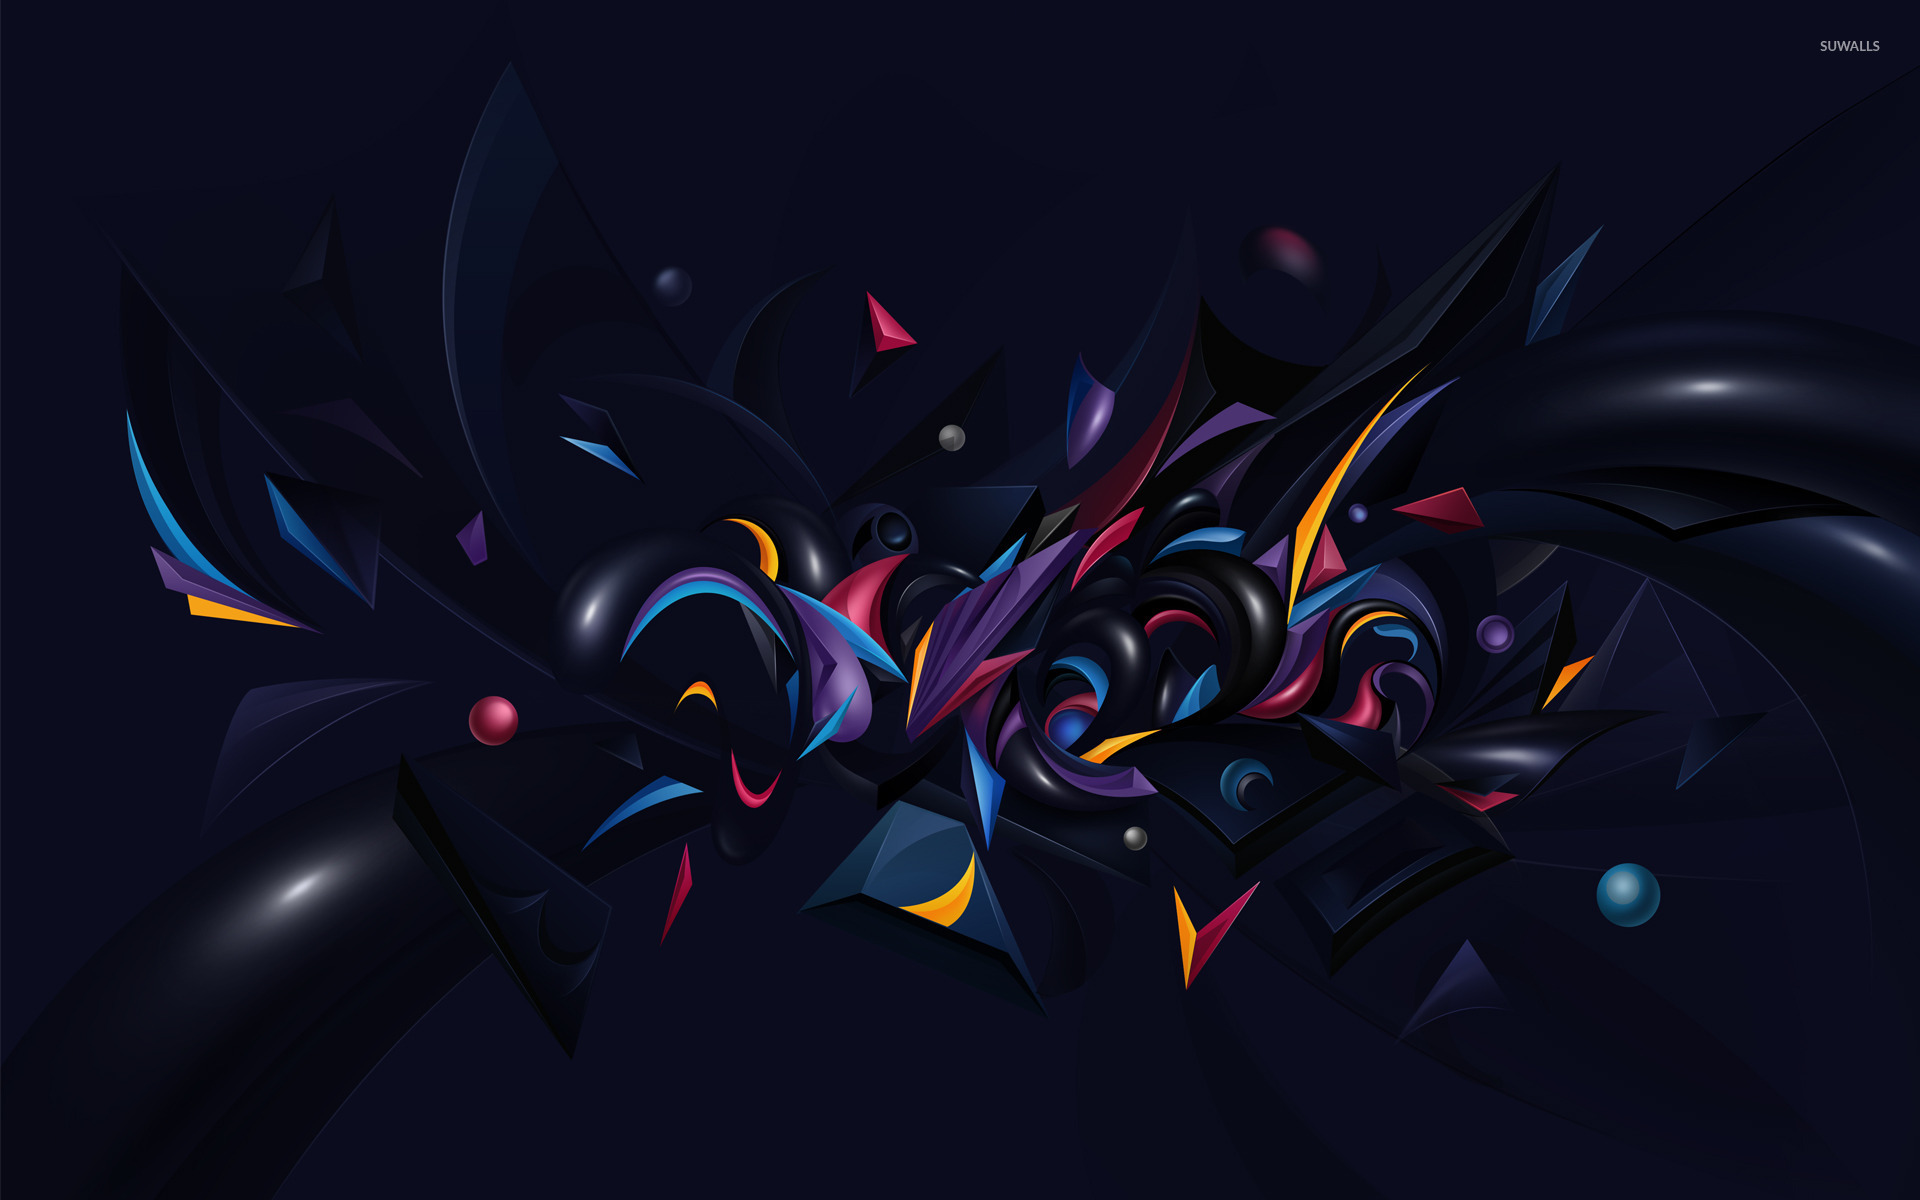 Colorful Shapes On A Dark Background Wallpaper Abstract